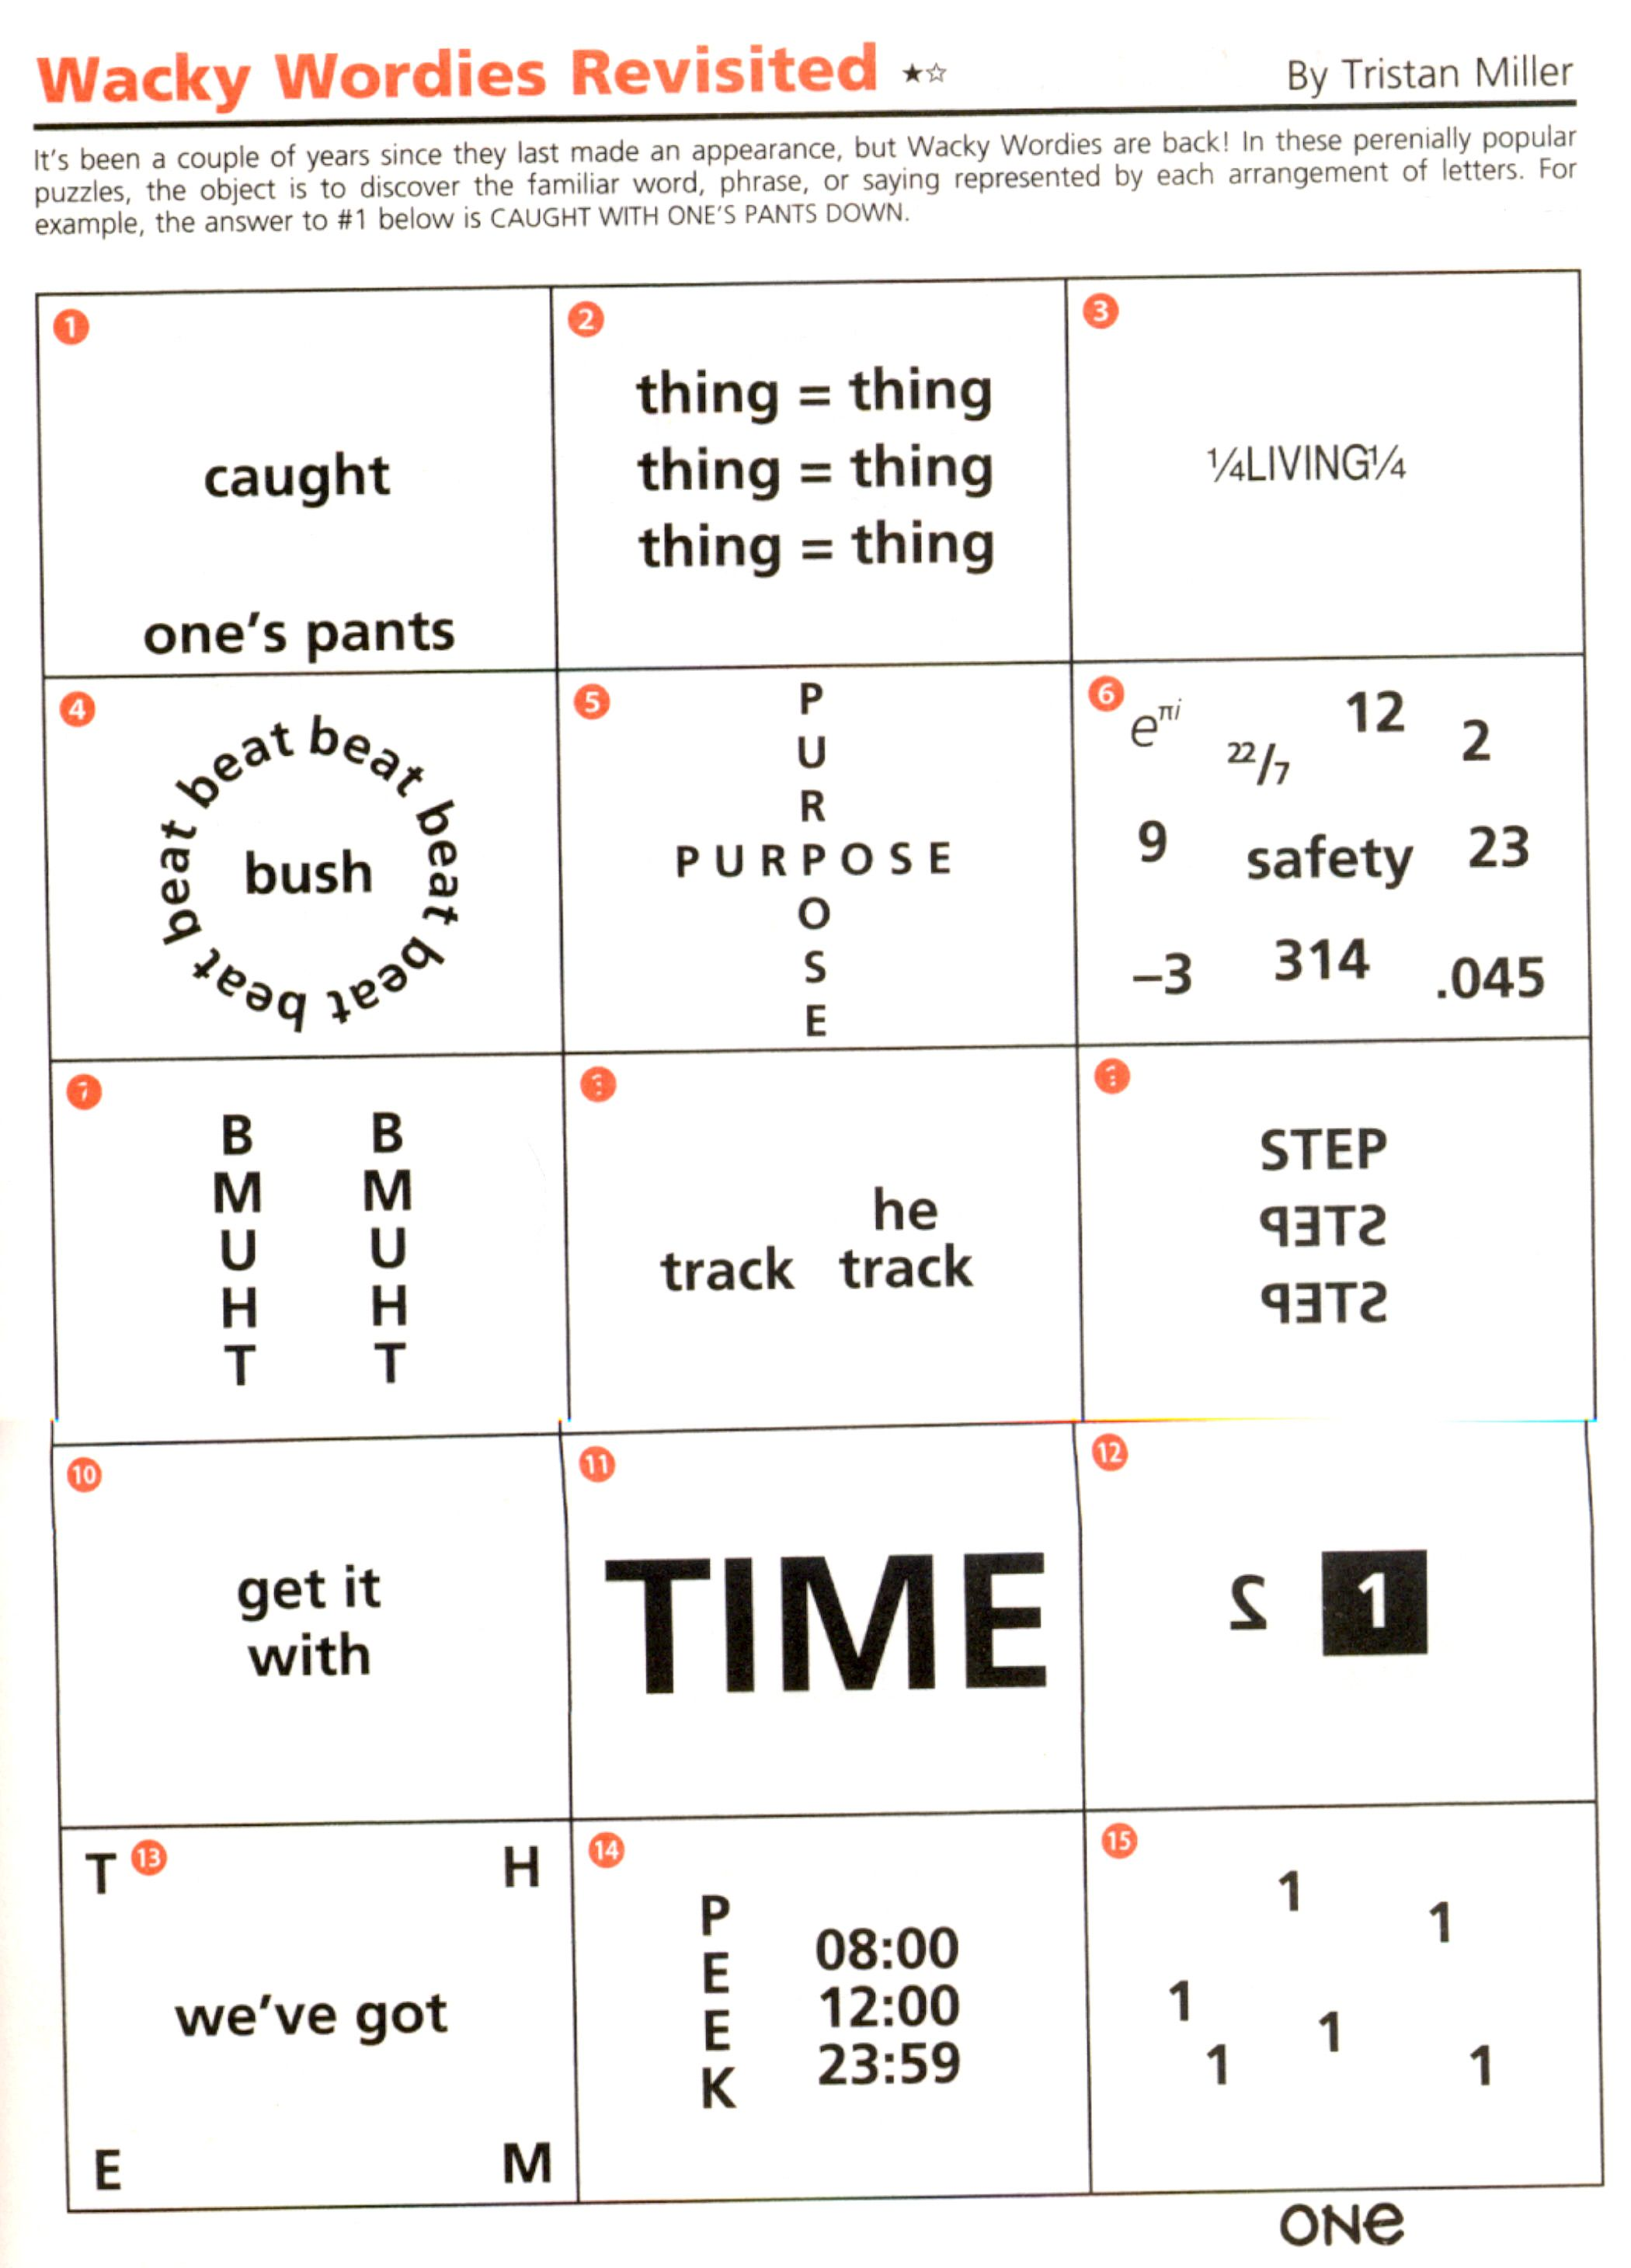 Worksheets Wacky Wordies Worksheets 1000 images about wacky wordies brain teasers on pinterest your free printable and teasers